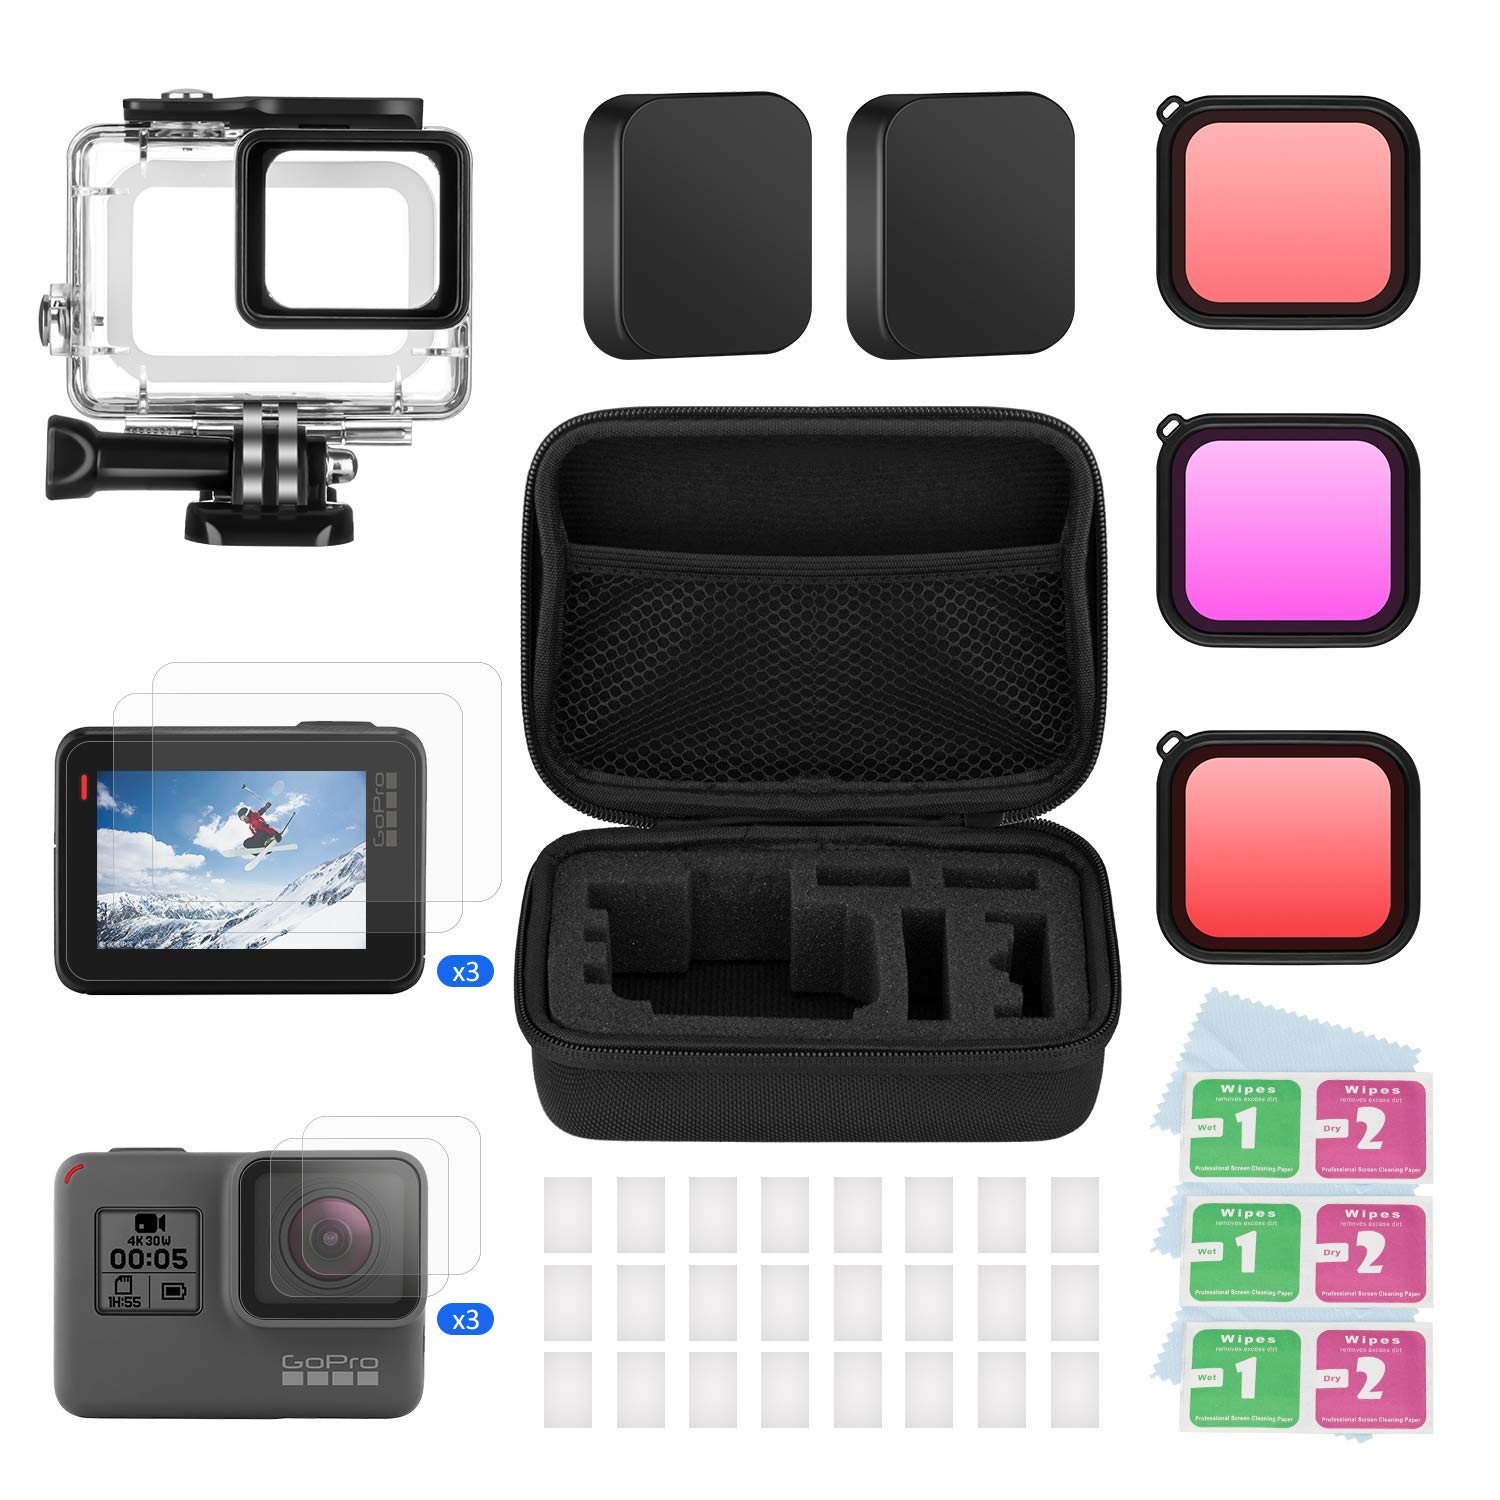 BOYISEN Accessory Kit for Gopro Hero 7(Only Black)/HD(2018)/6/5 with Housing Case and Filter Kit Including Waterproof housing case, Filter, Screen Protector, Lens Cap, Anti-Fog Inserts, Carrying Case by BOYISEN